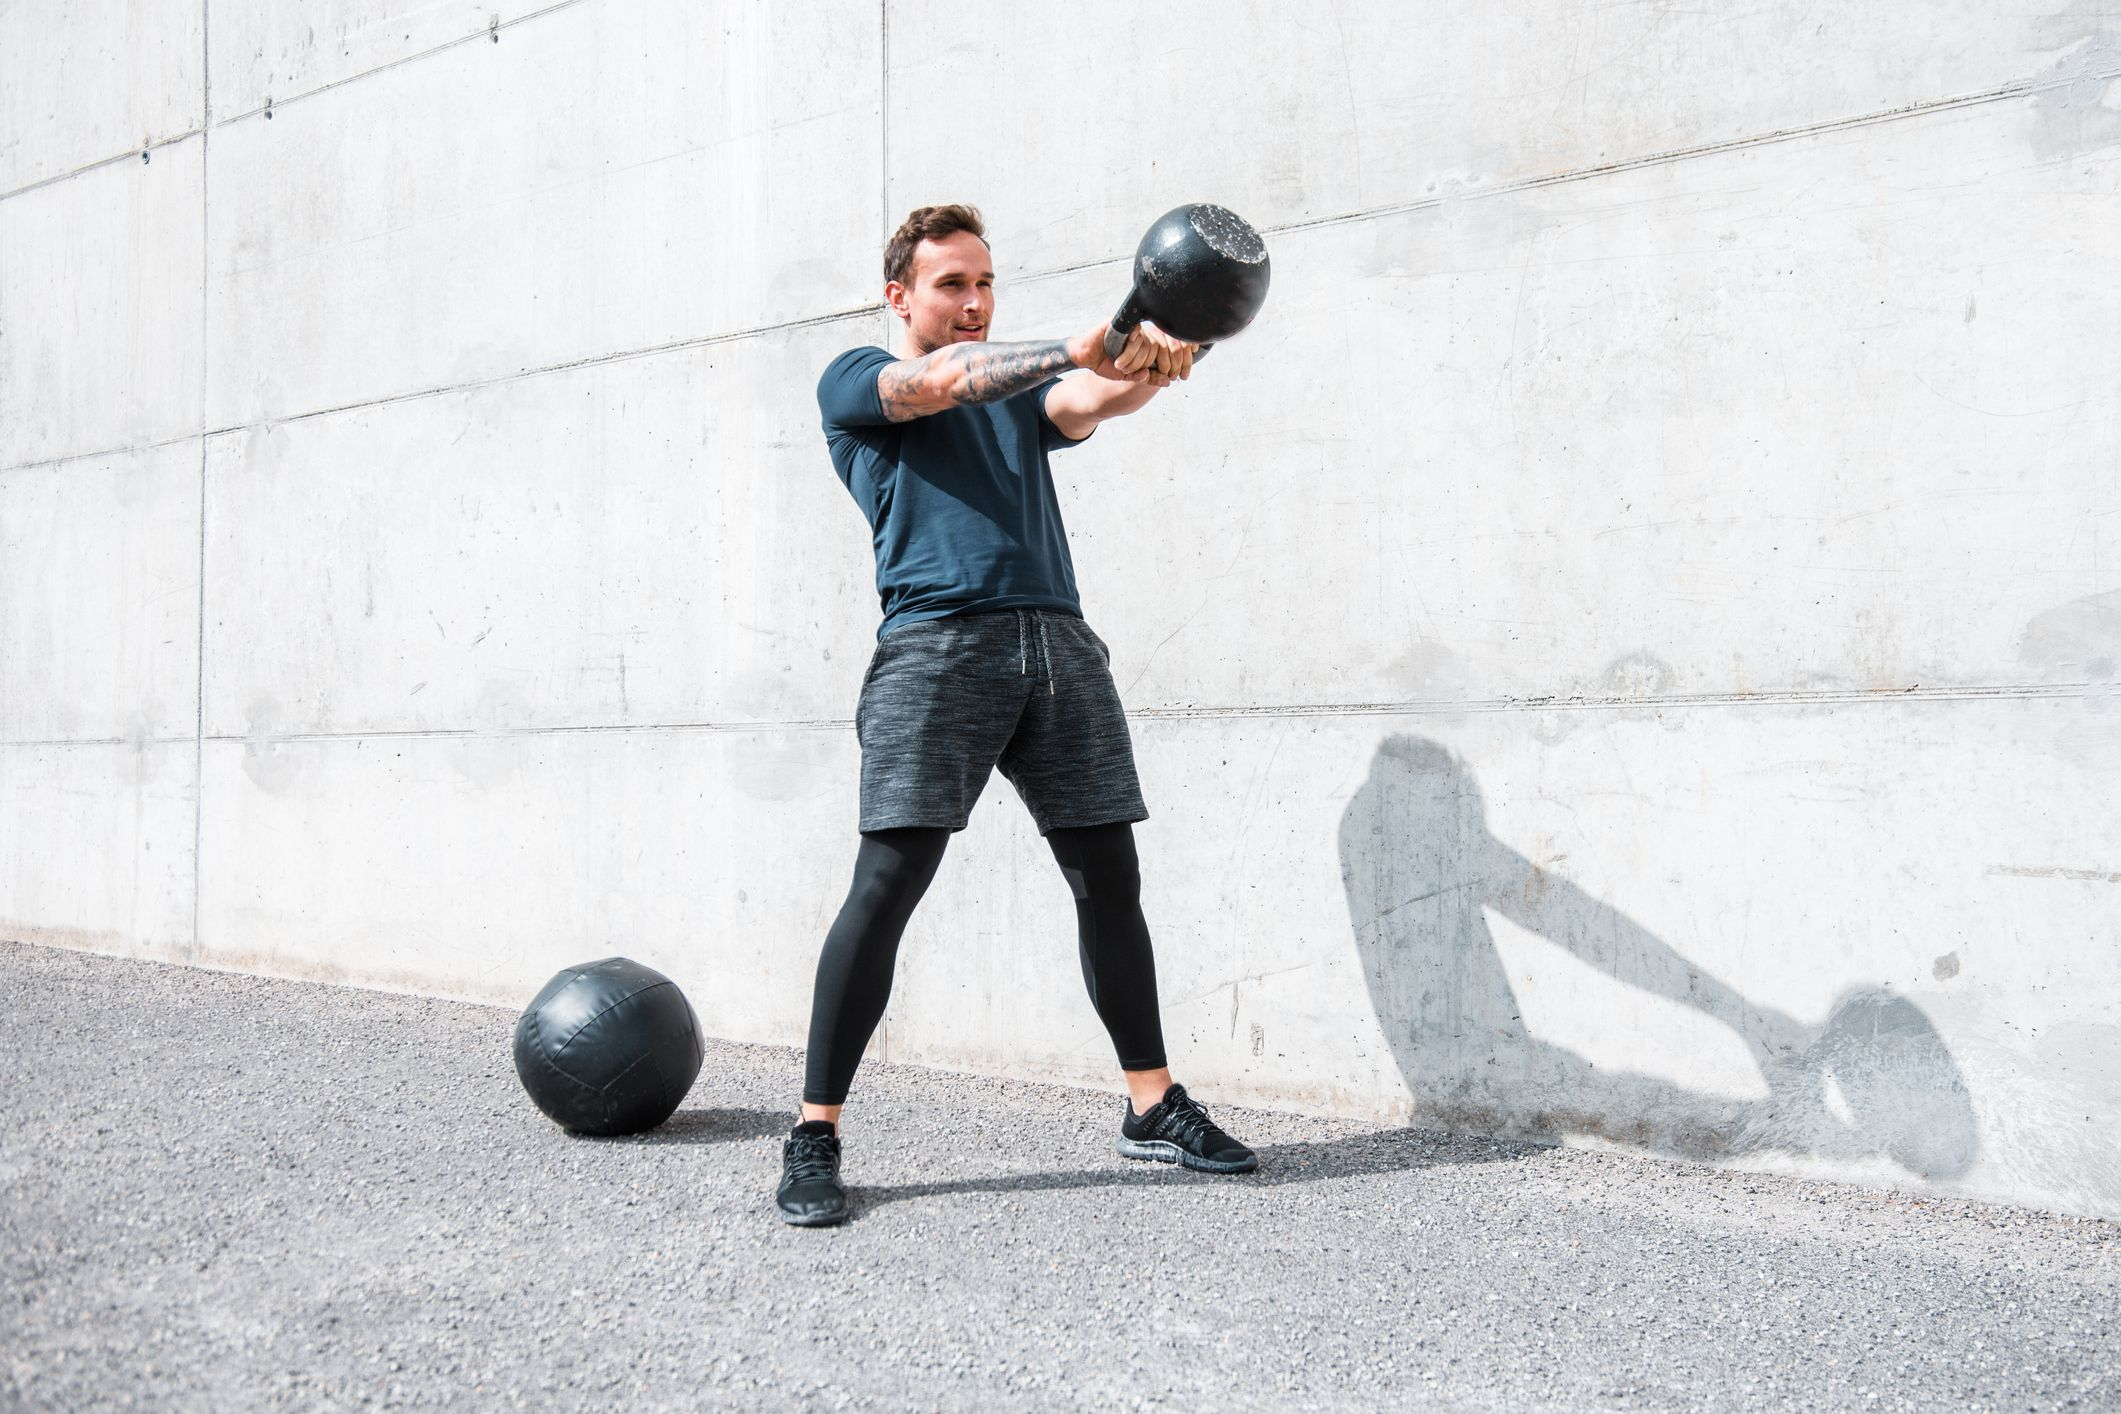 man-exercising-with-a-kettlebell-outdoors-royalty-free-image-955272210-1547755193